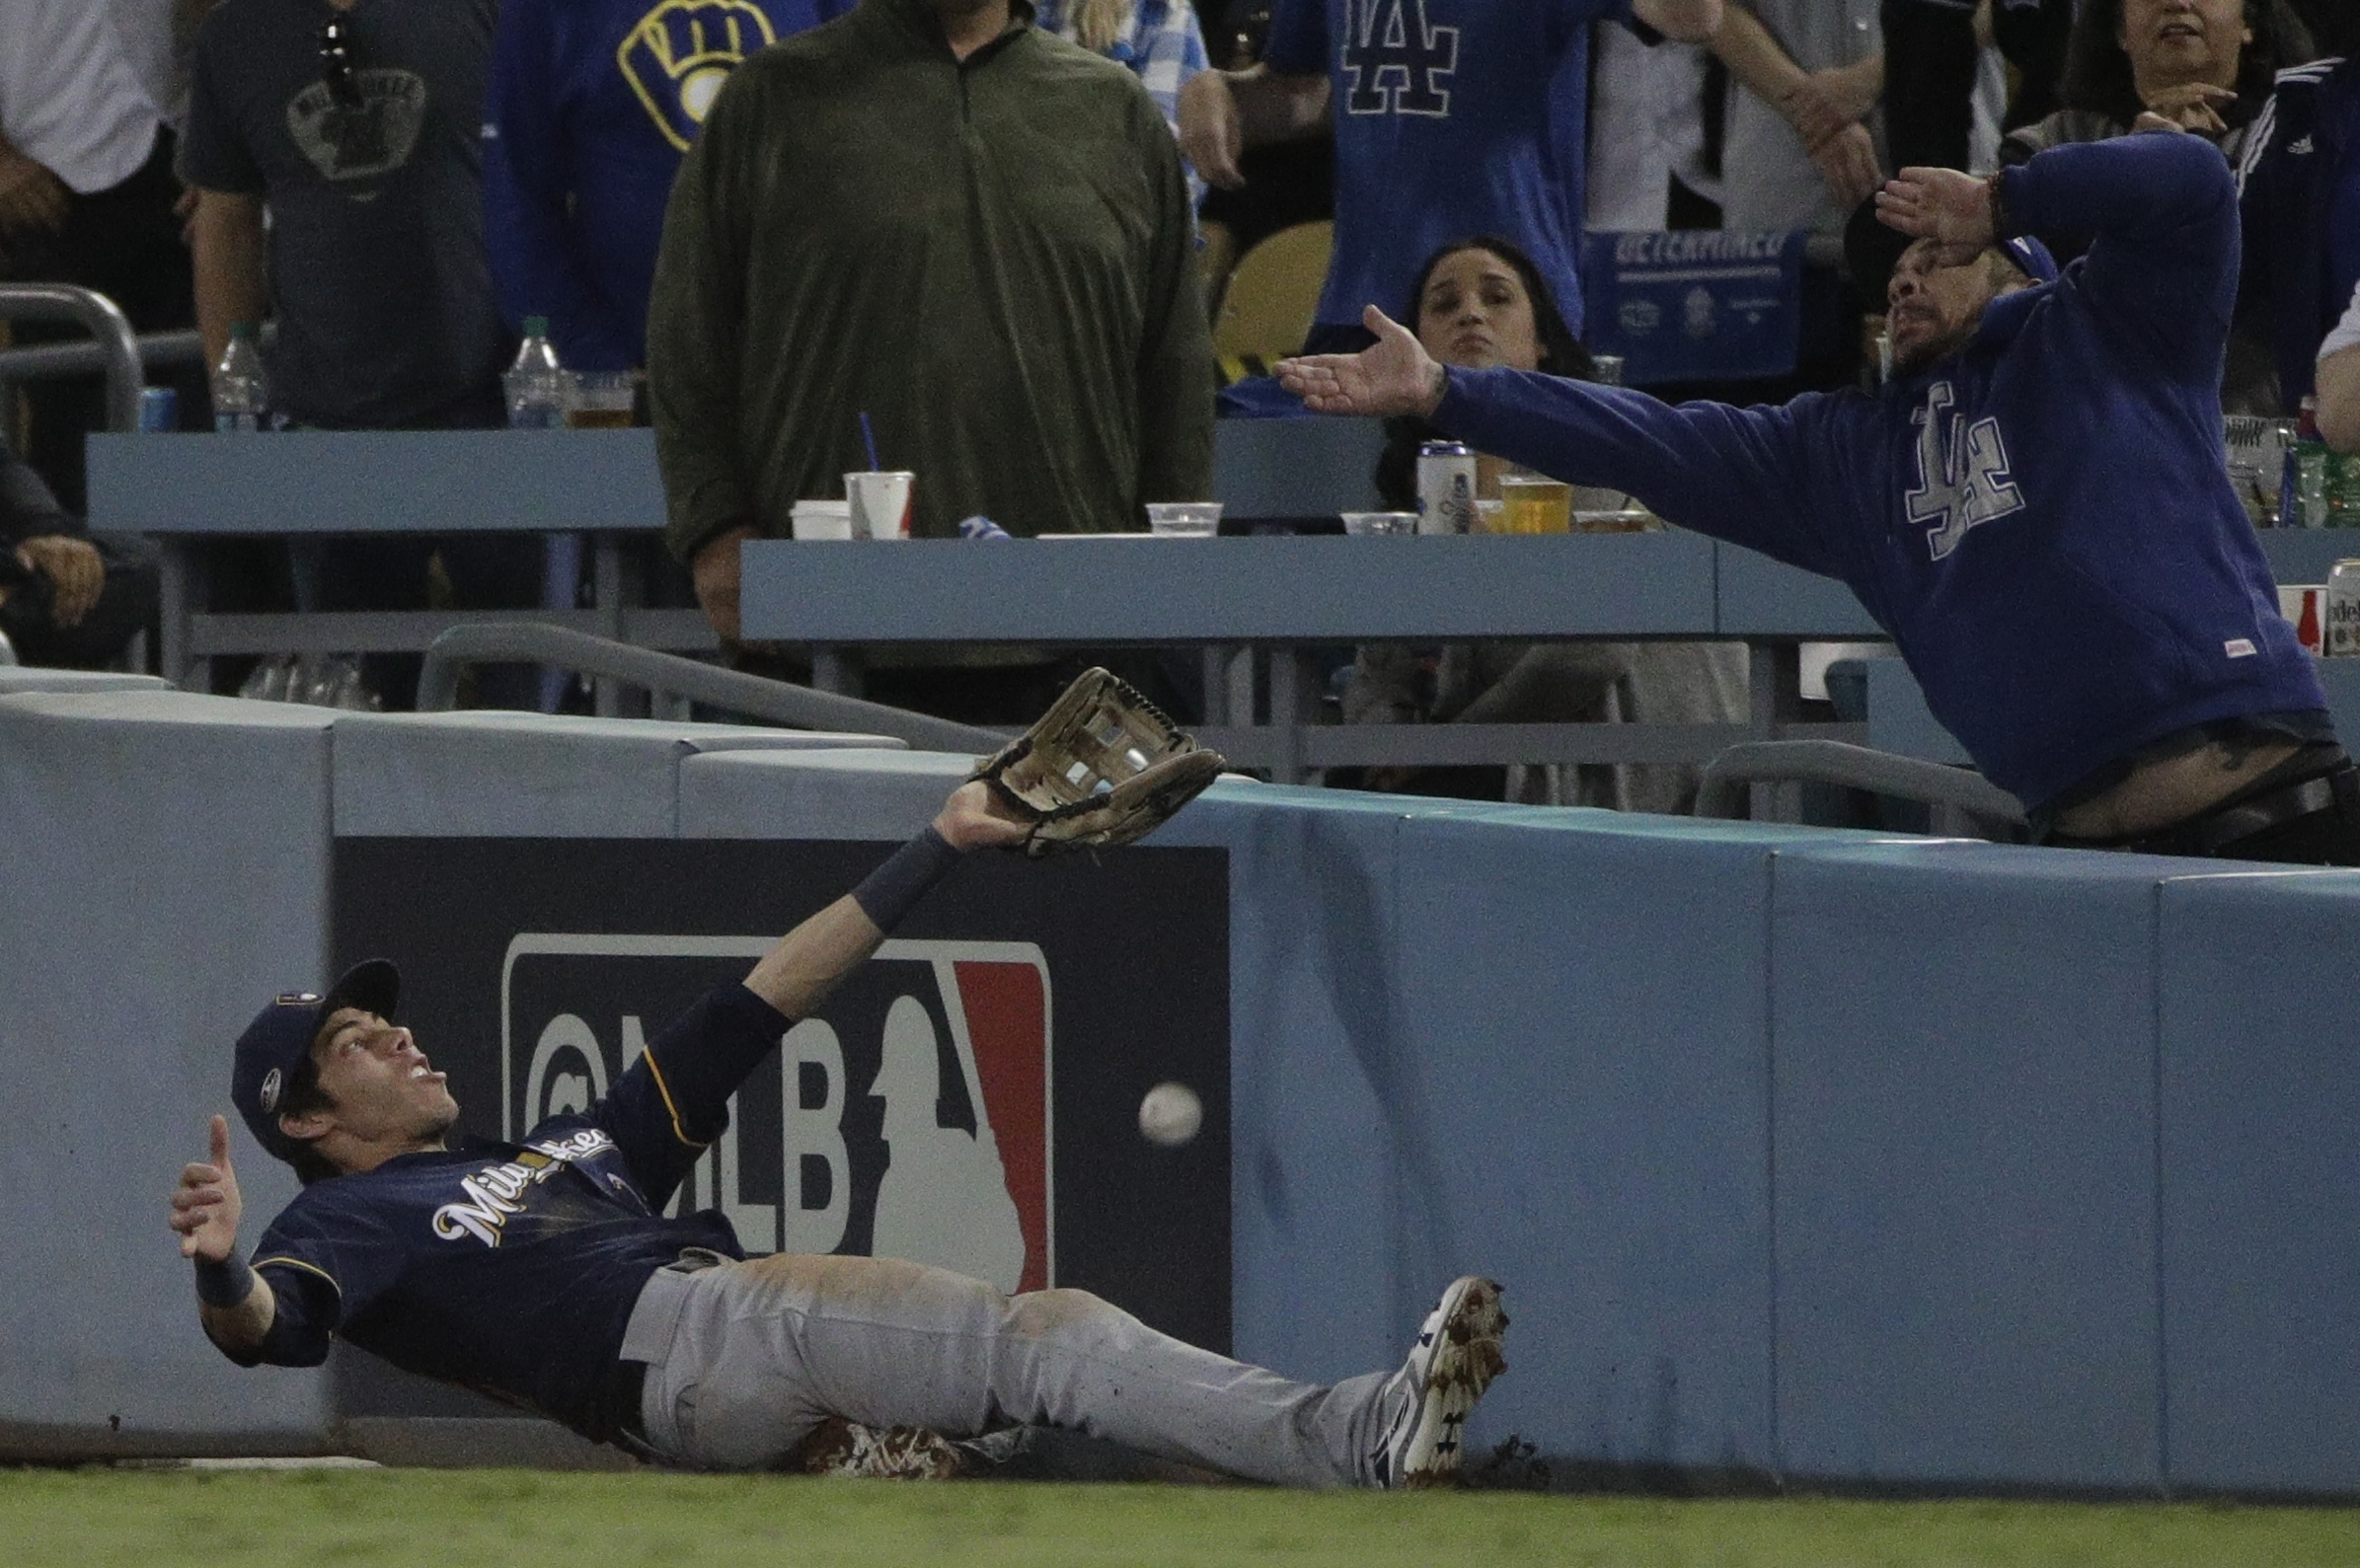 <div class='meta'><div class='origin-logo' data-origin='AP'></div><span class='caption-text' data-credit='AP Photo/Jae Hong'>Milwaukee Brewers' Christian Yelich can't catch a foul ball hit by Los Angeles Dodgers' Brian Dozier during the eighth inning of Game 4 of the NLCS.</span></div>